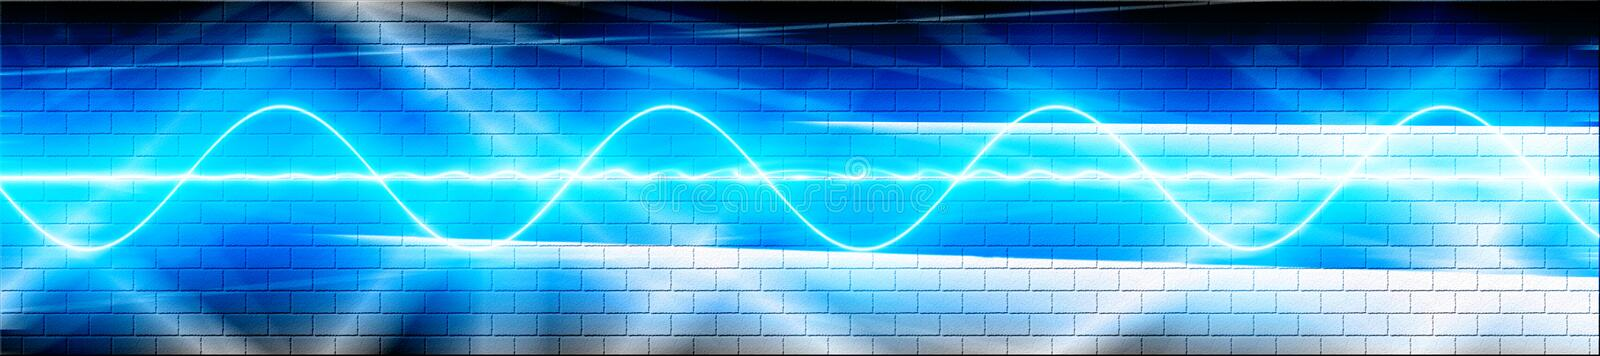 Behind the wall. Outside the firewall a contaminated blaze rages, inside clean data energy streams. Or to represent techno laser light show for dance club